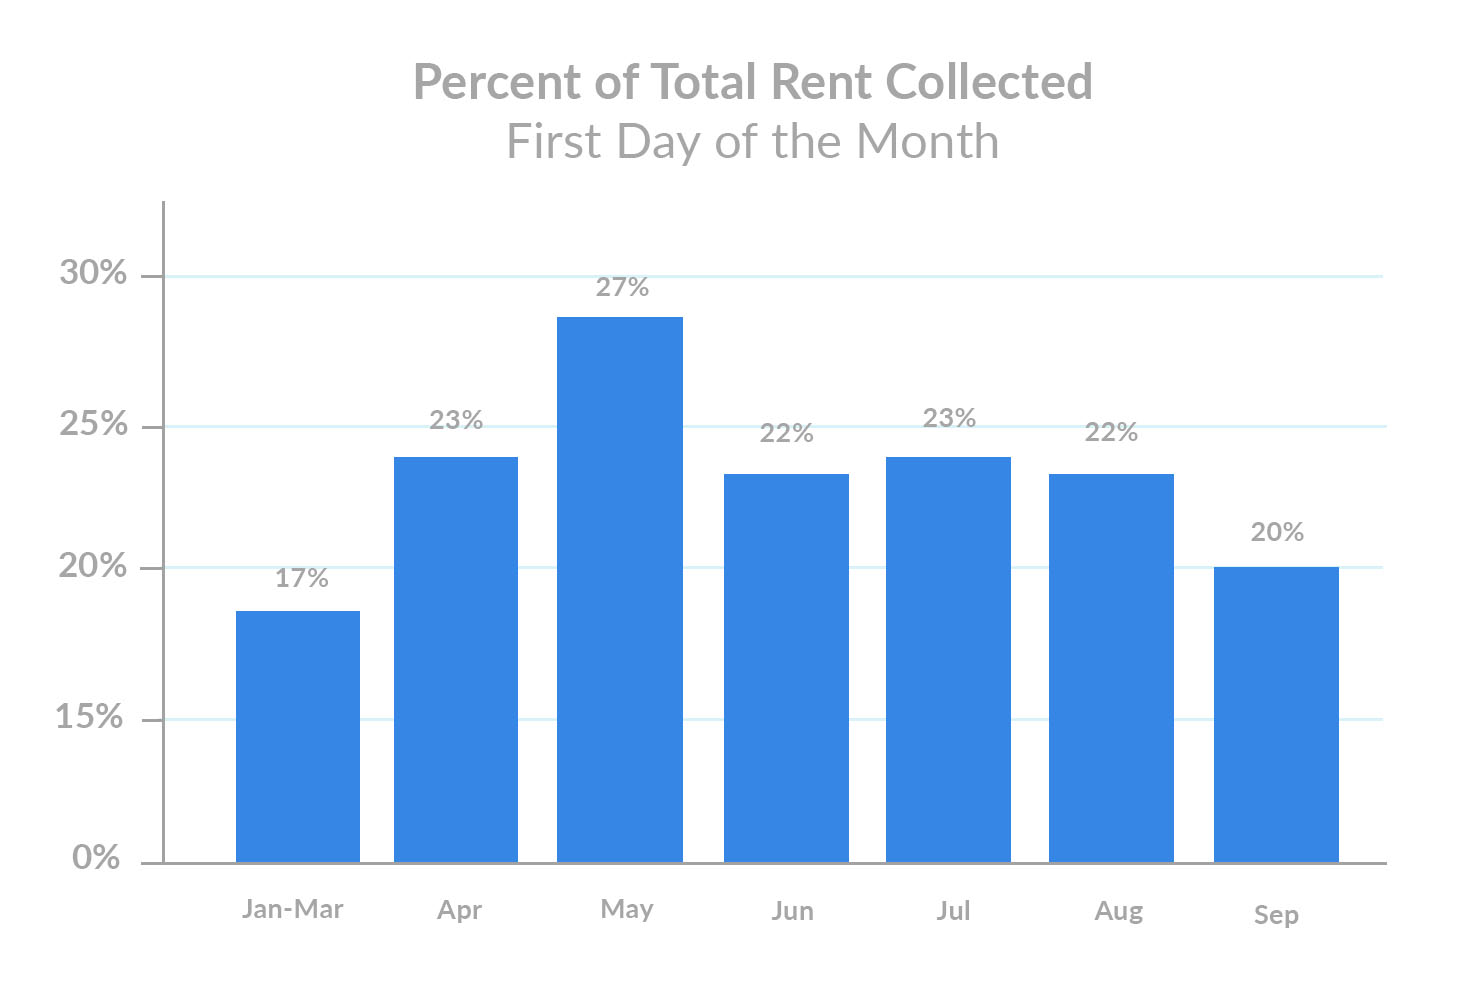 Percent of Total Rent Collected September 1st Rent Payments